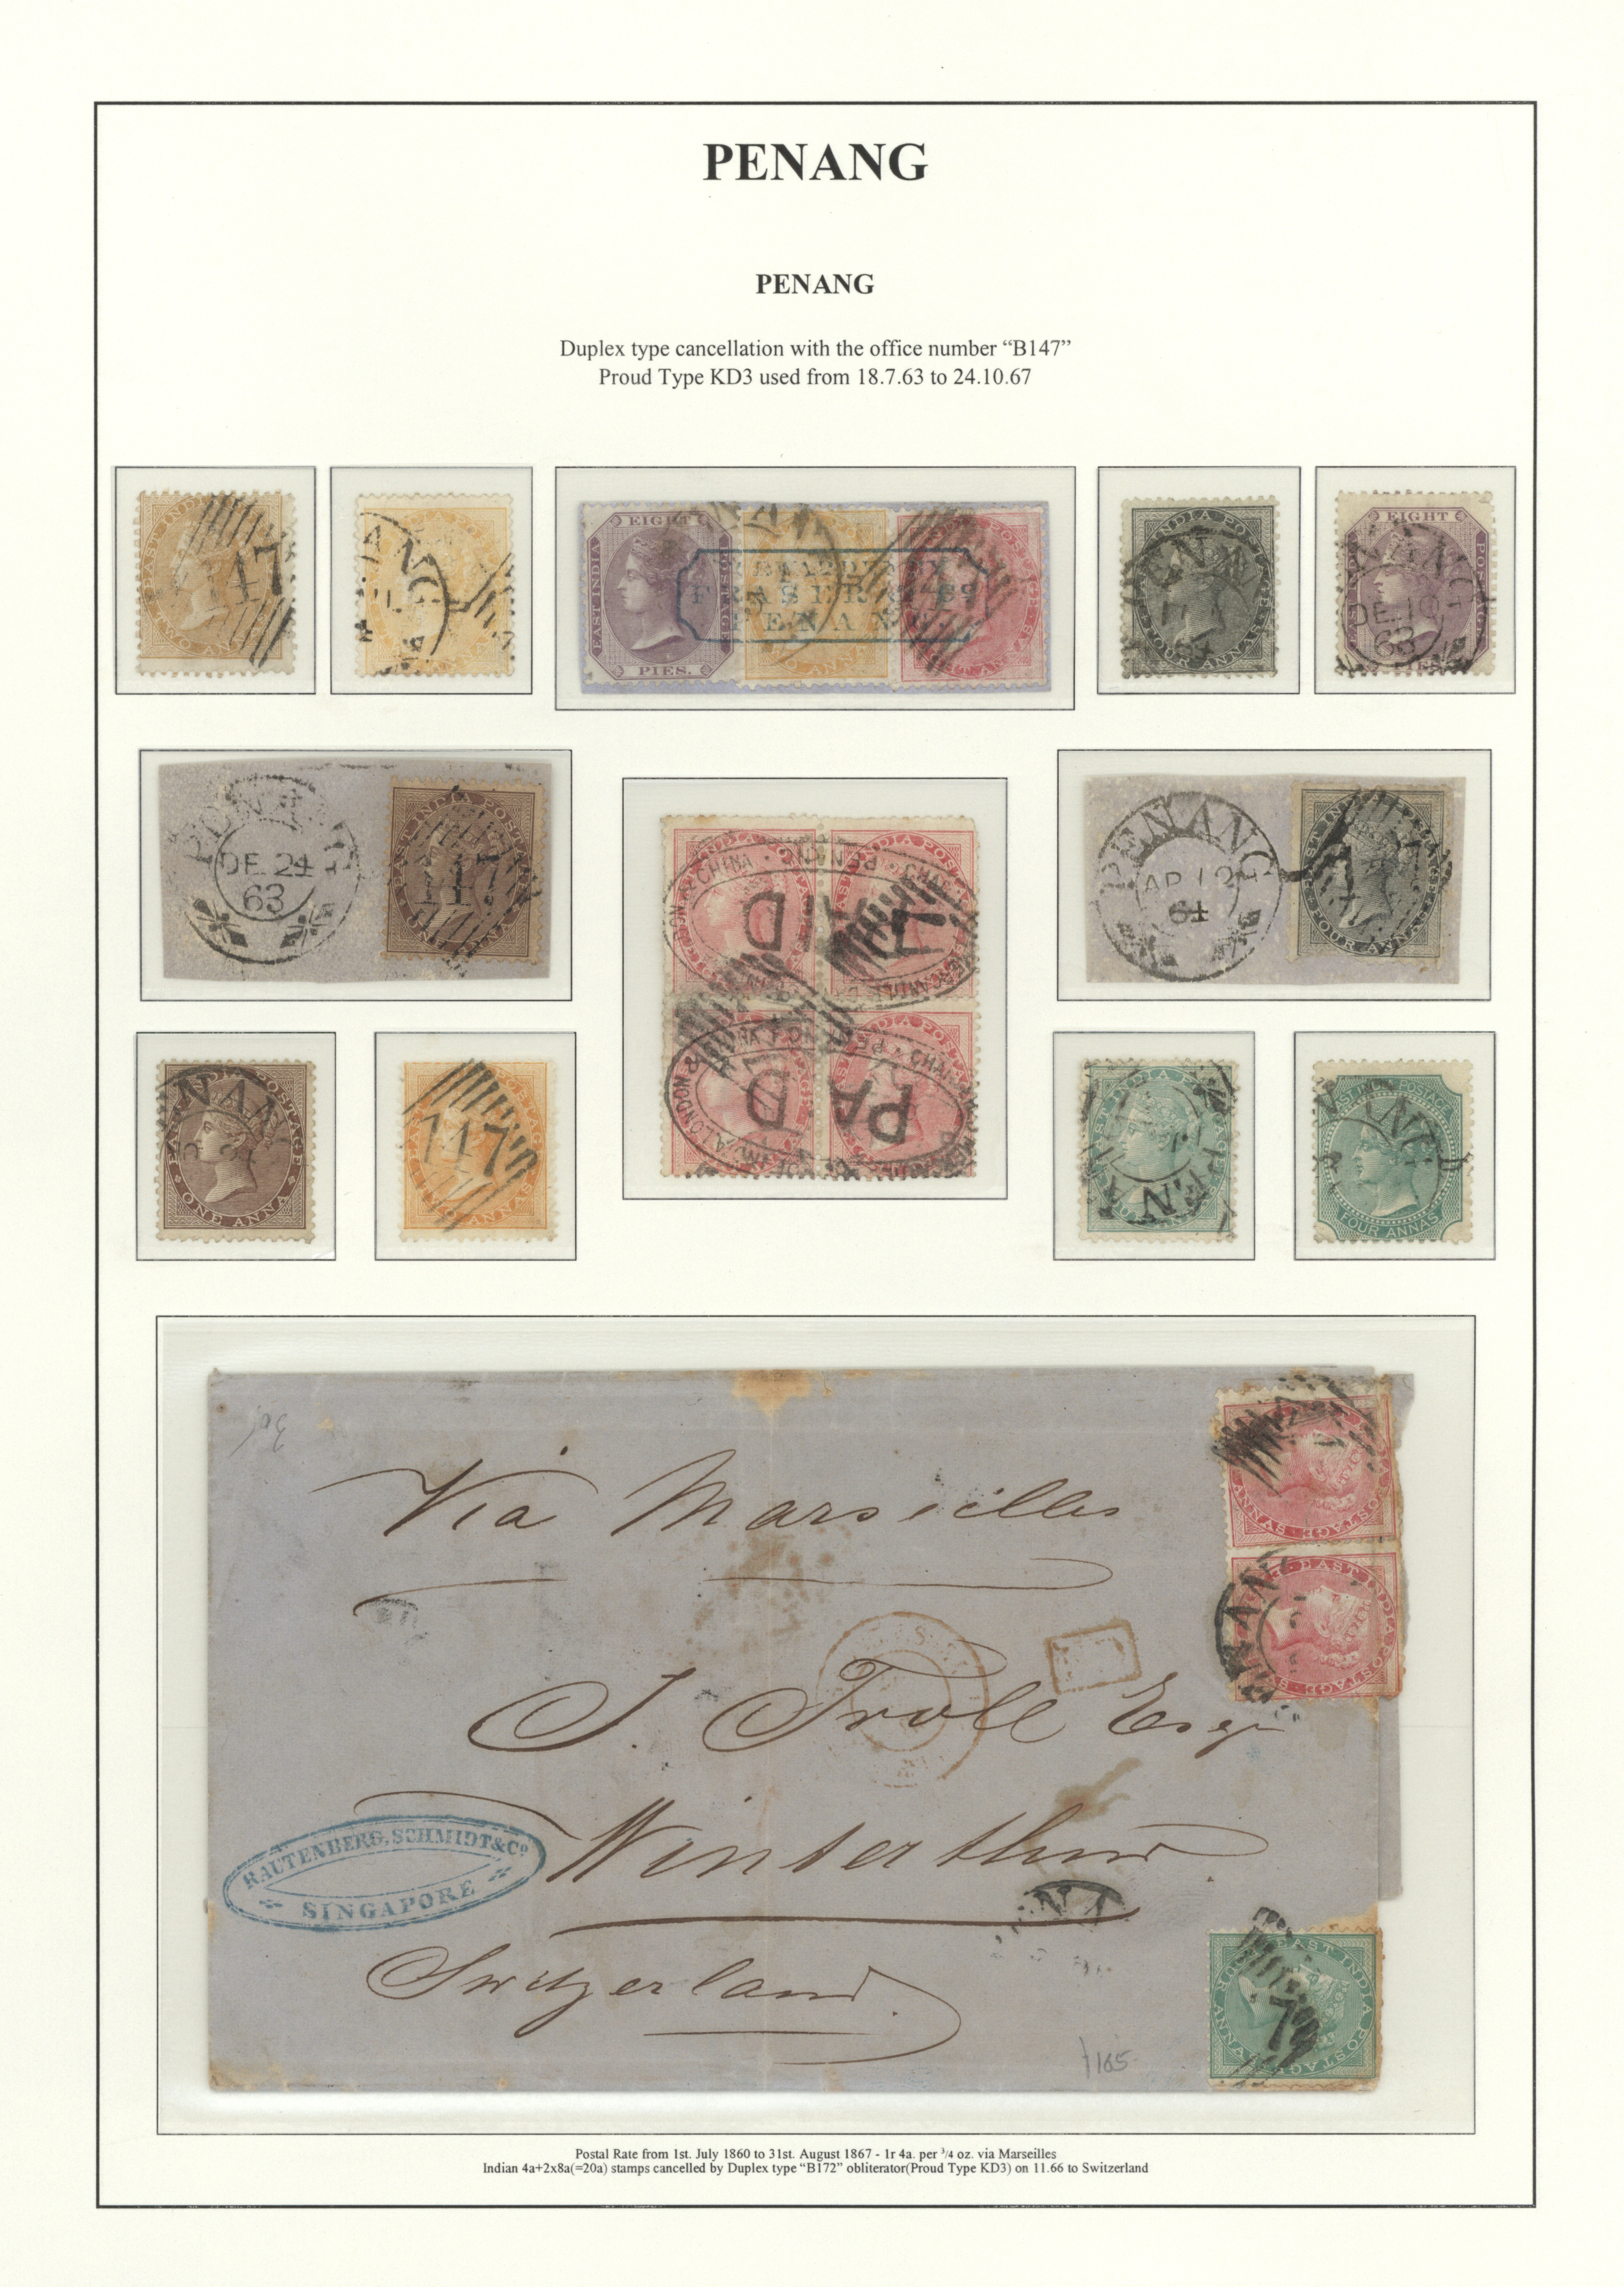 Lot 9479 - Malaiische Staaten - Penang  -  Auktionshaus Christoph Gärtner GmbH & Co. KG Philately: ASIA single lots including Special Catalog Malaya Auction #39 Day 3